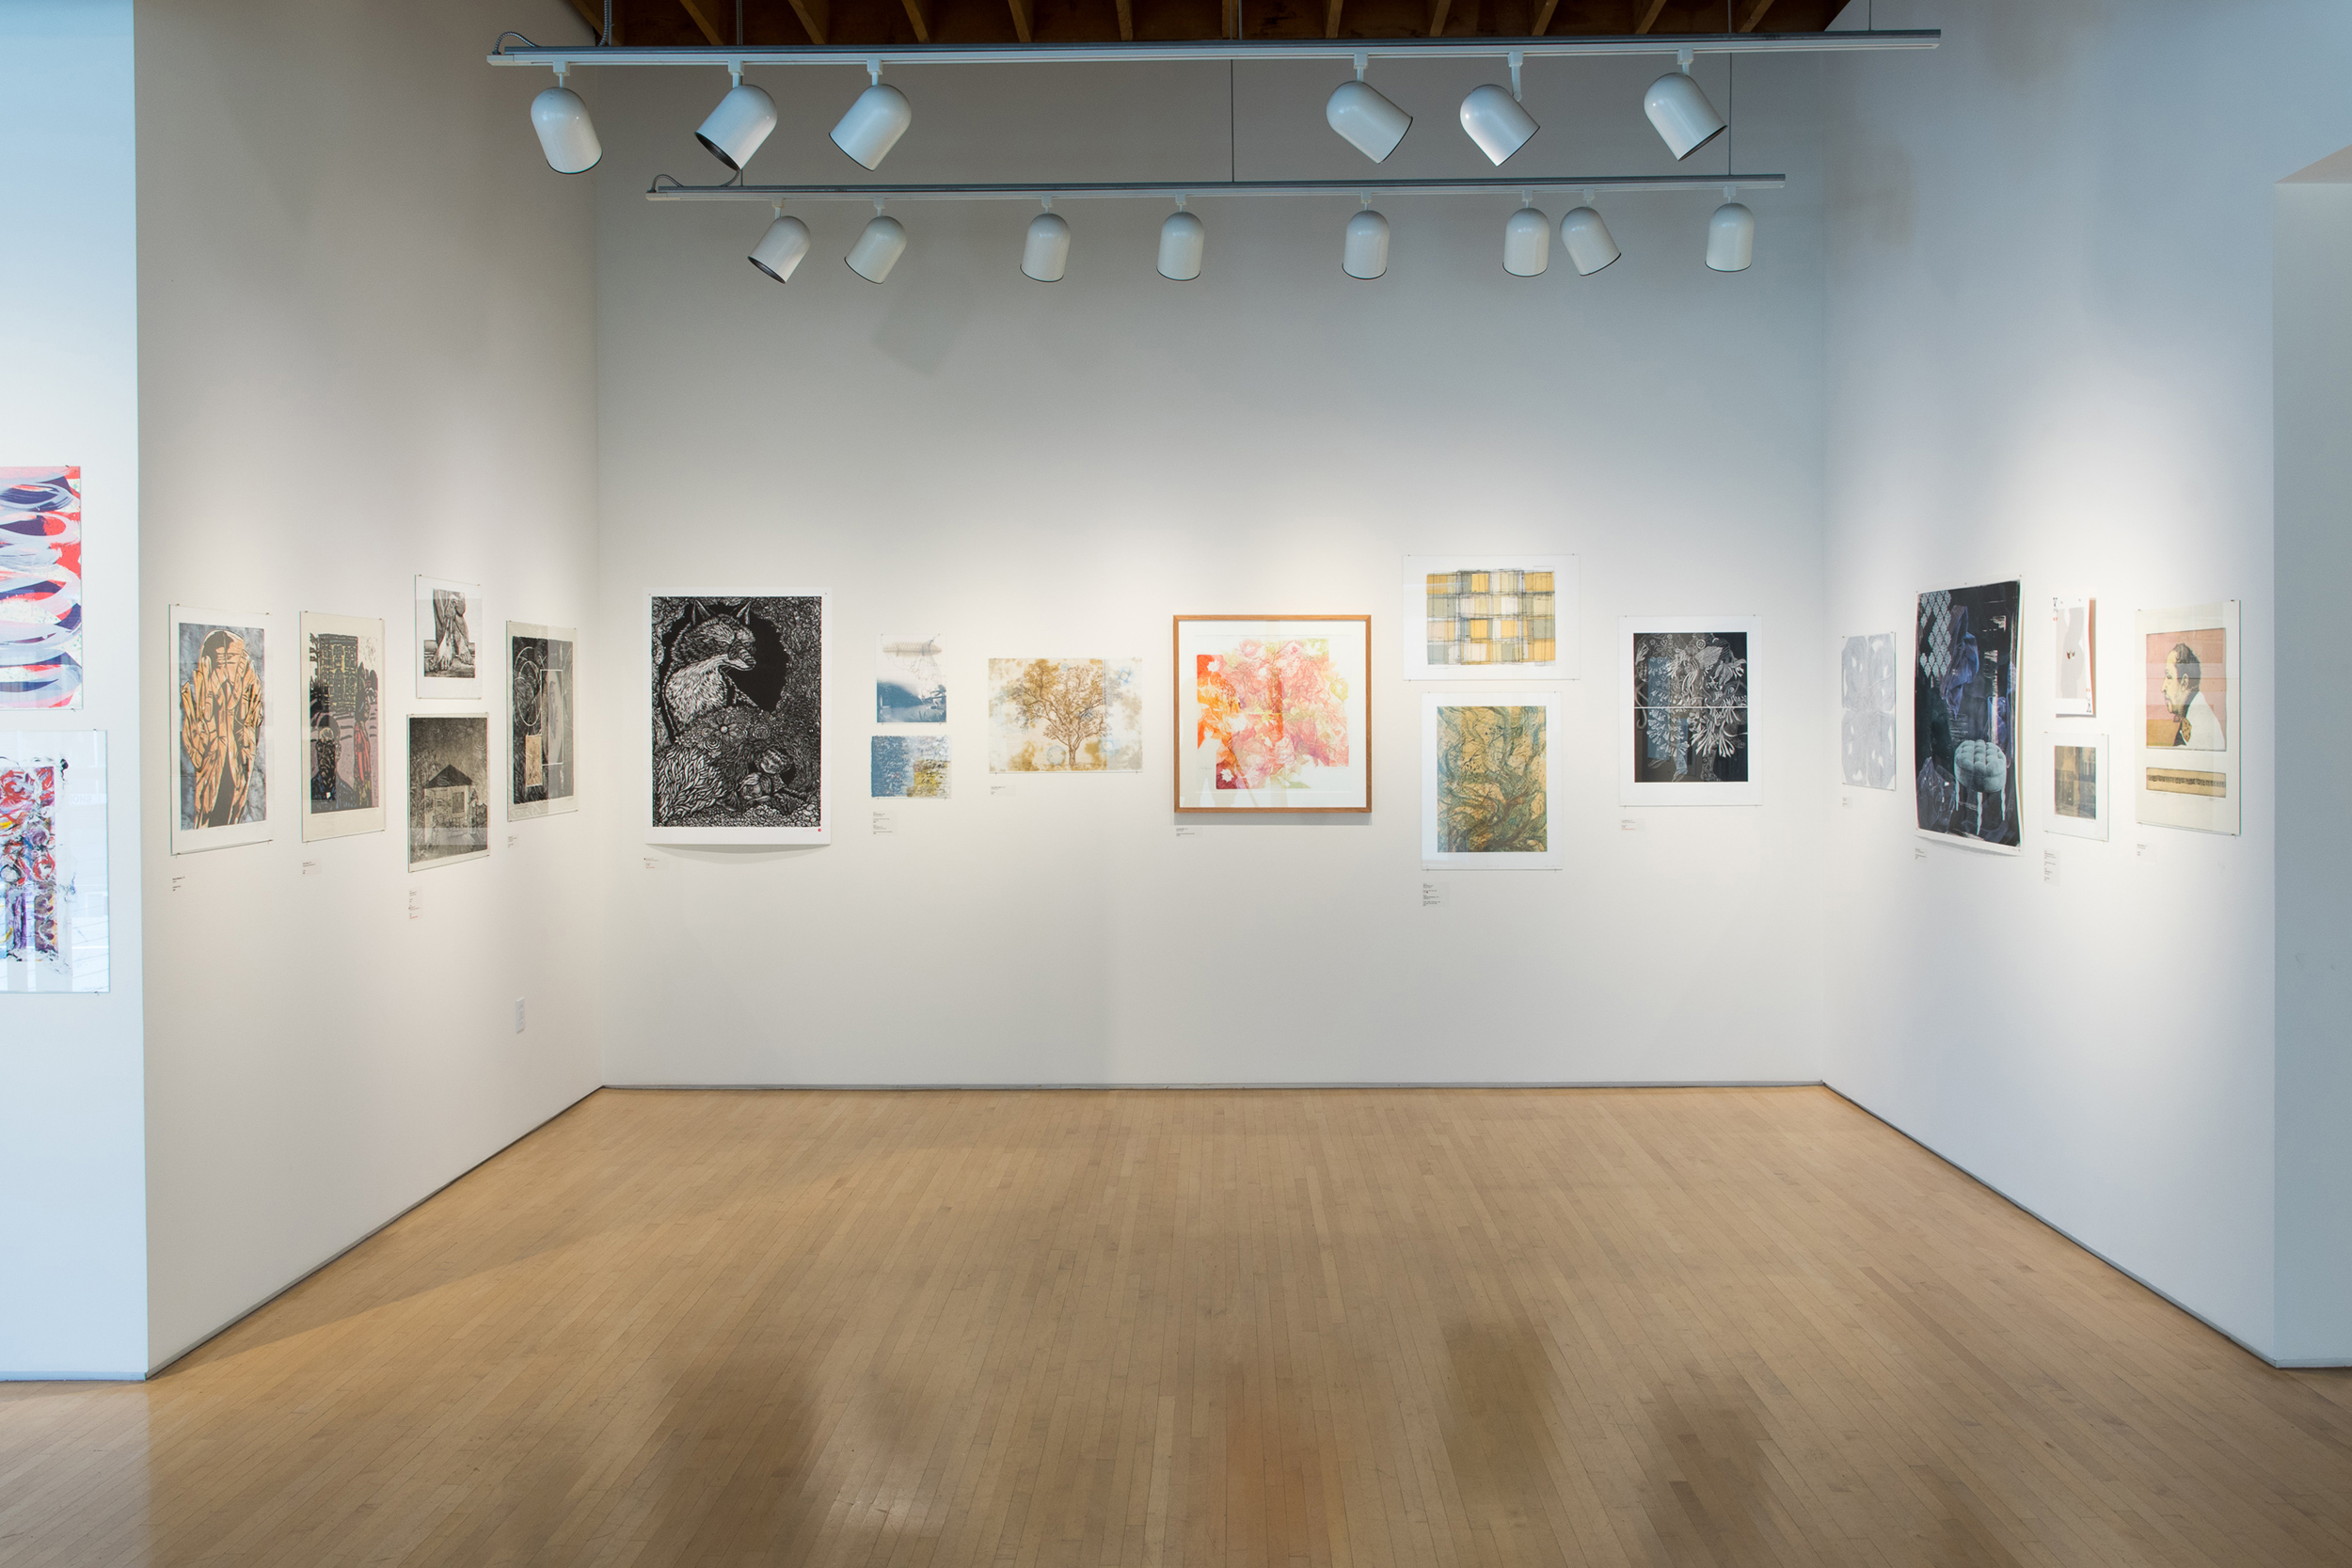 Highpoint PrintmakingStand Out Prints Exhibit180927a0285.JPG